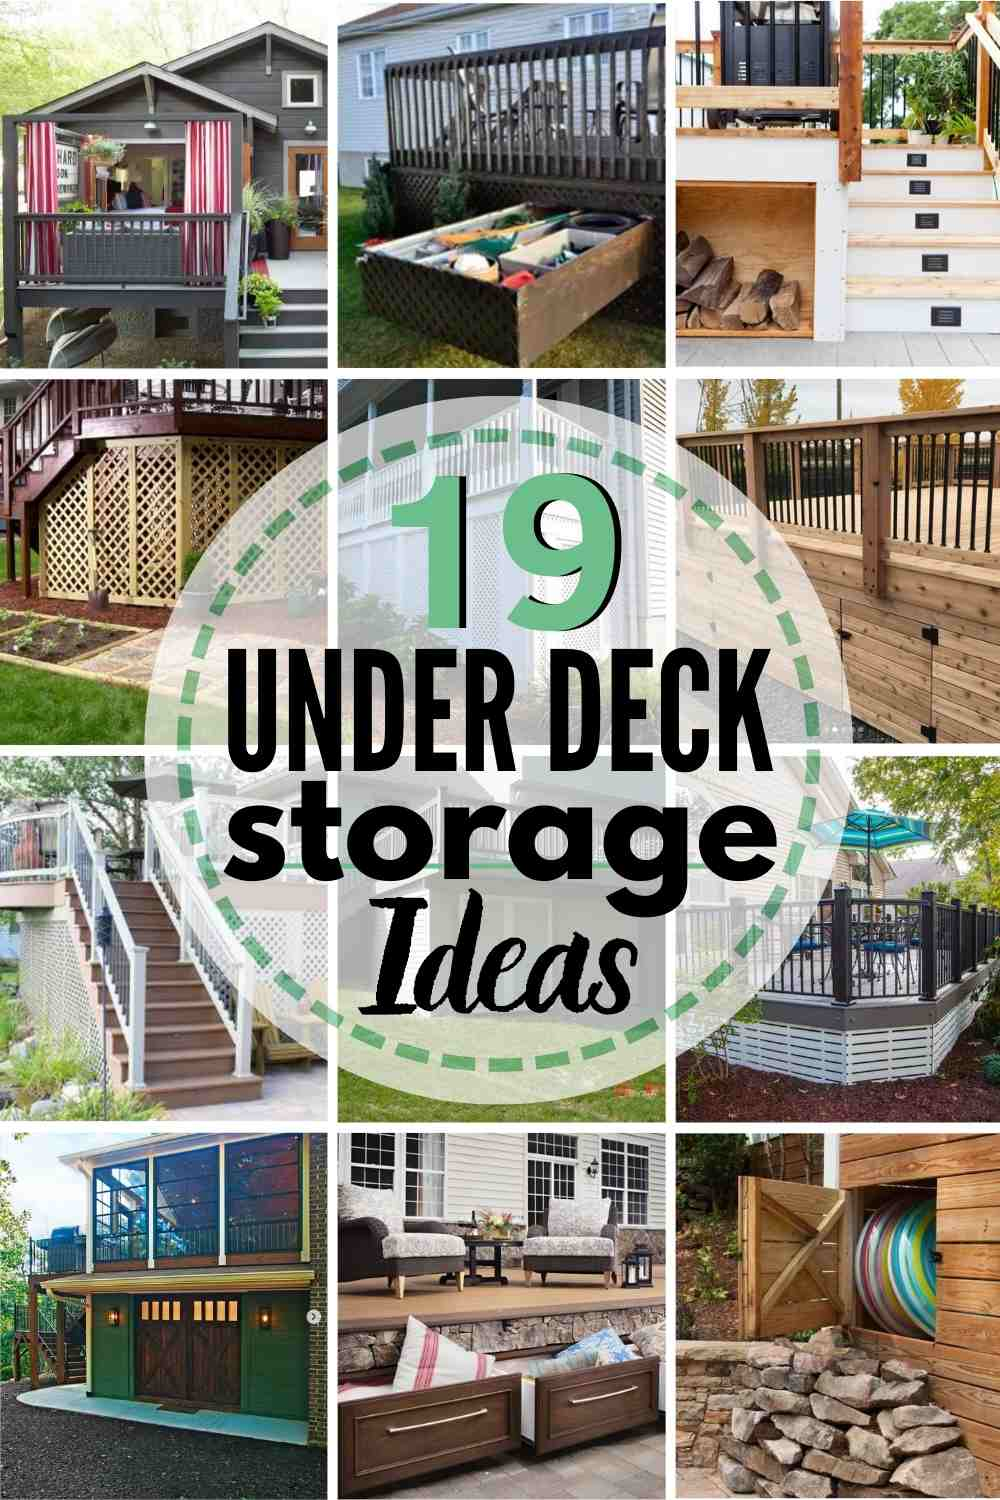 19 Under Deck Storage Ideas - grid with 12 images of different ideas